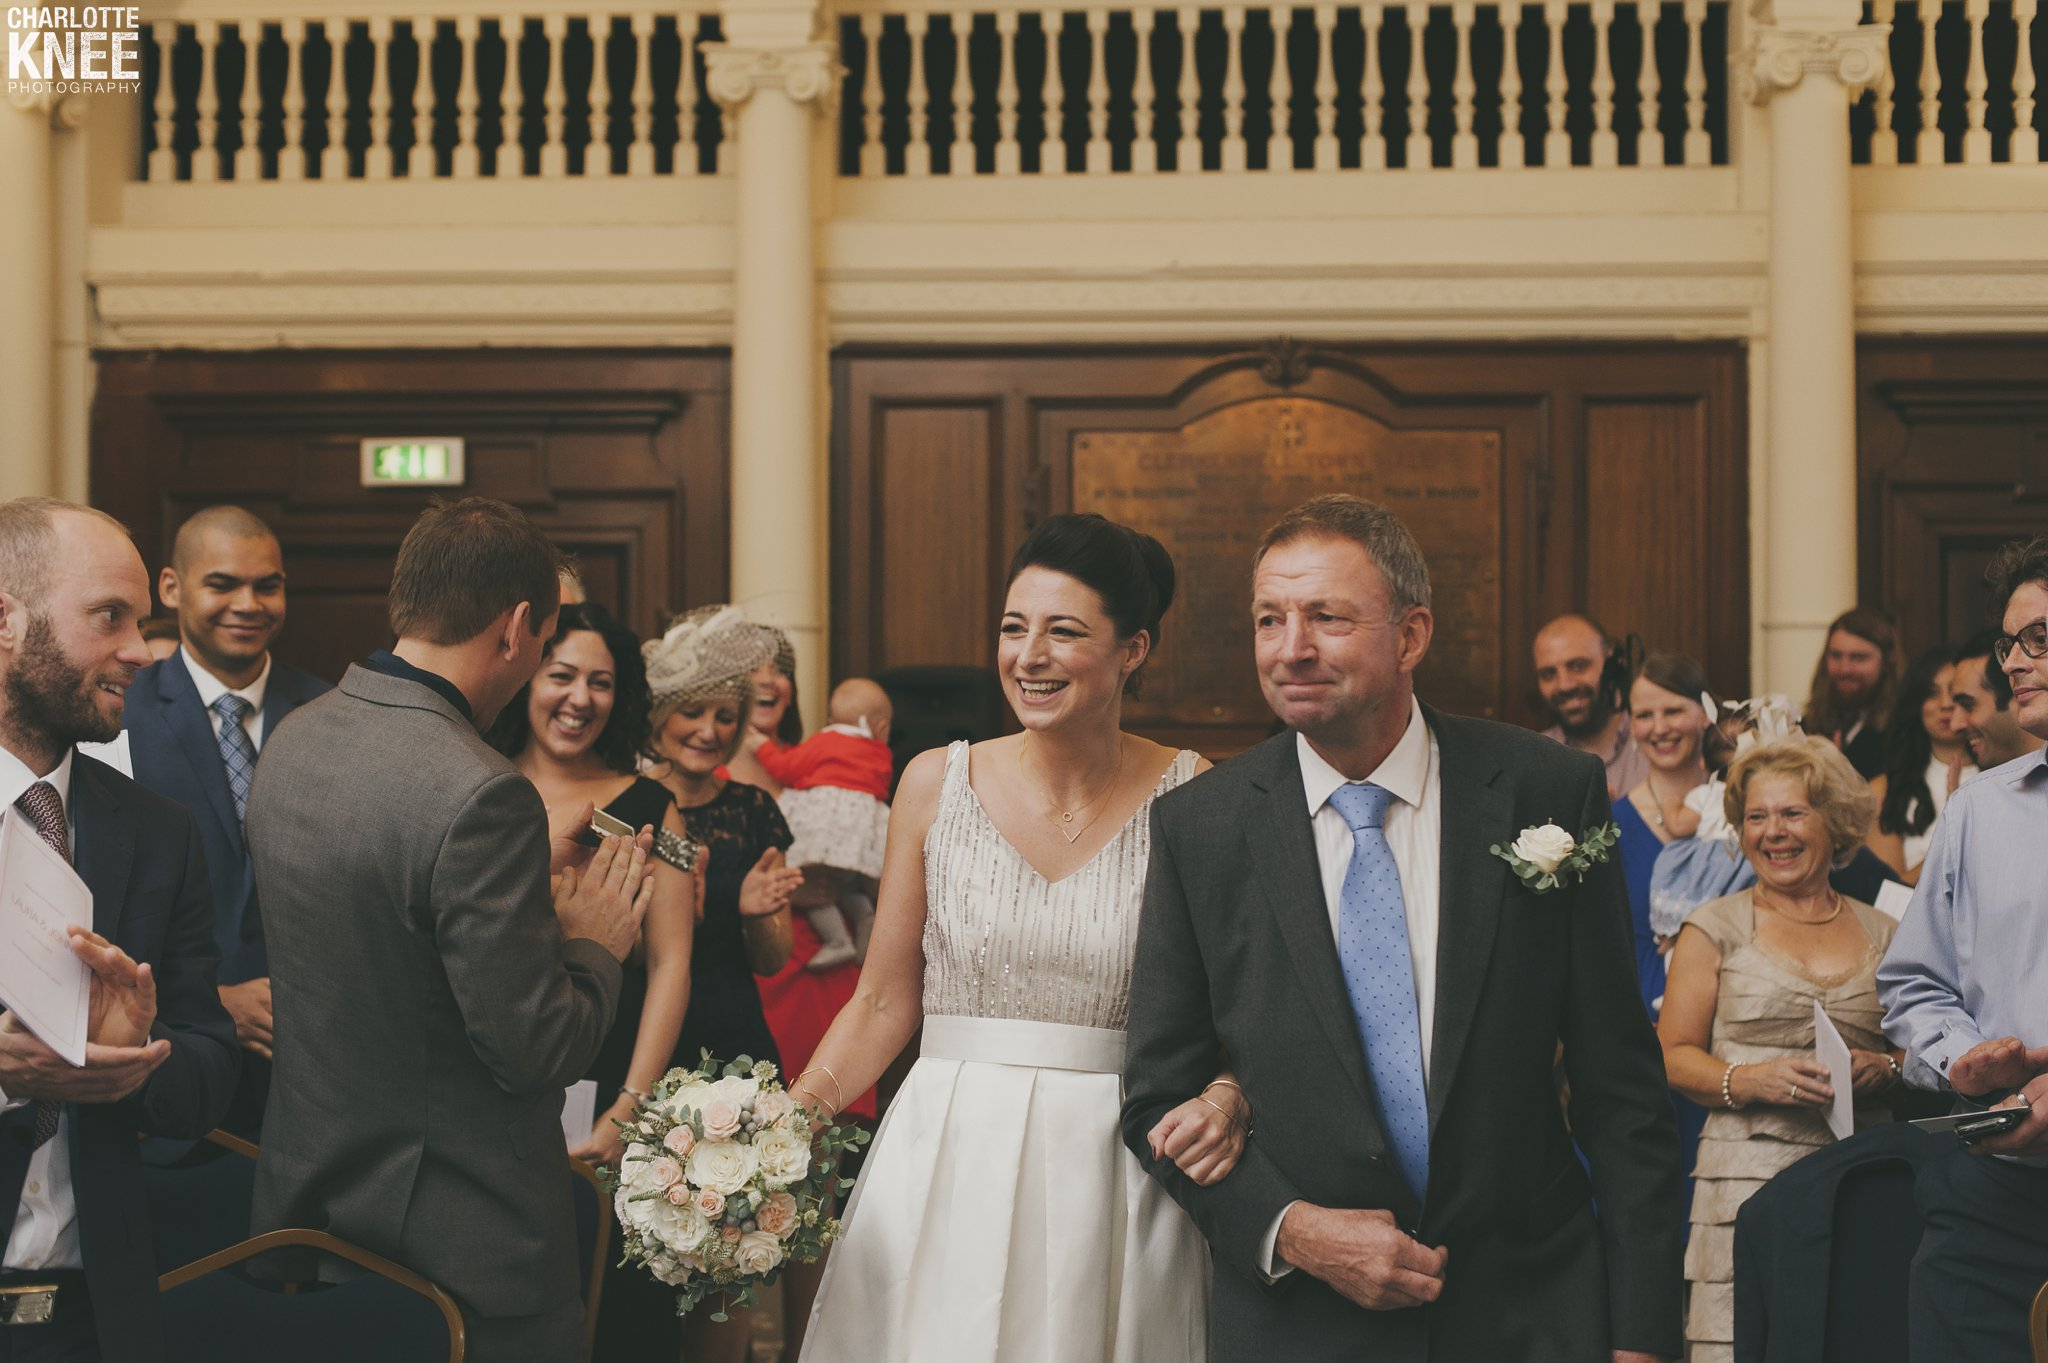 London Wedding Finsbury Town Hall Copyright Charlotte Knee Photography_0065.jpg